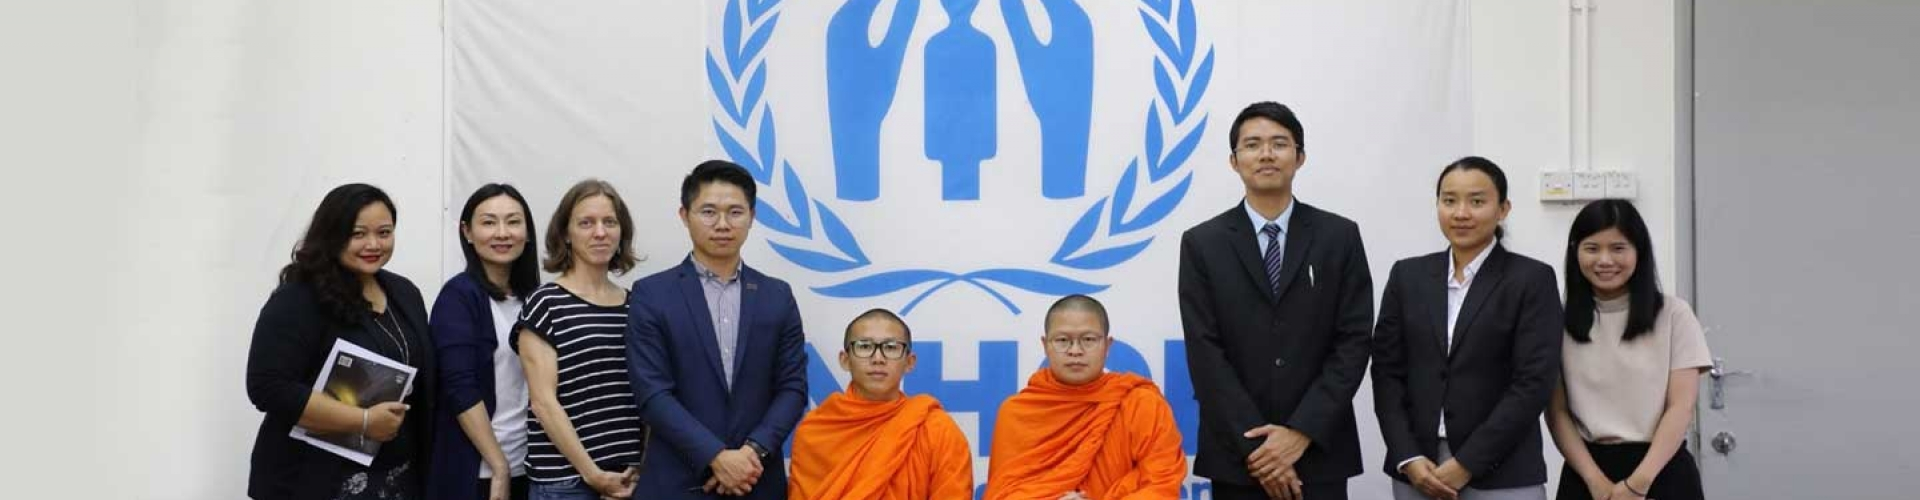 The Venerable Vudhijaya Vajiramedhi (V. Vajiramedhi), supporter of Nobody Left Outside Campaign, travelled to UNHCR Malaysia.